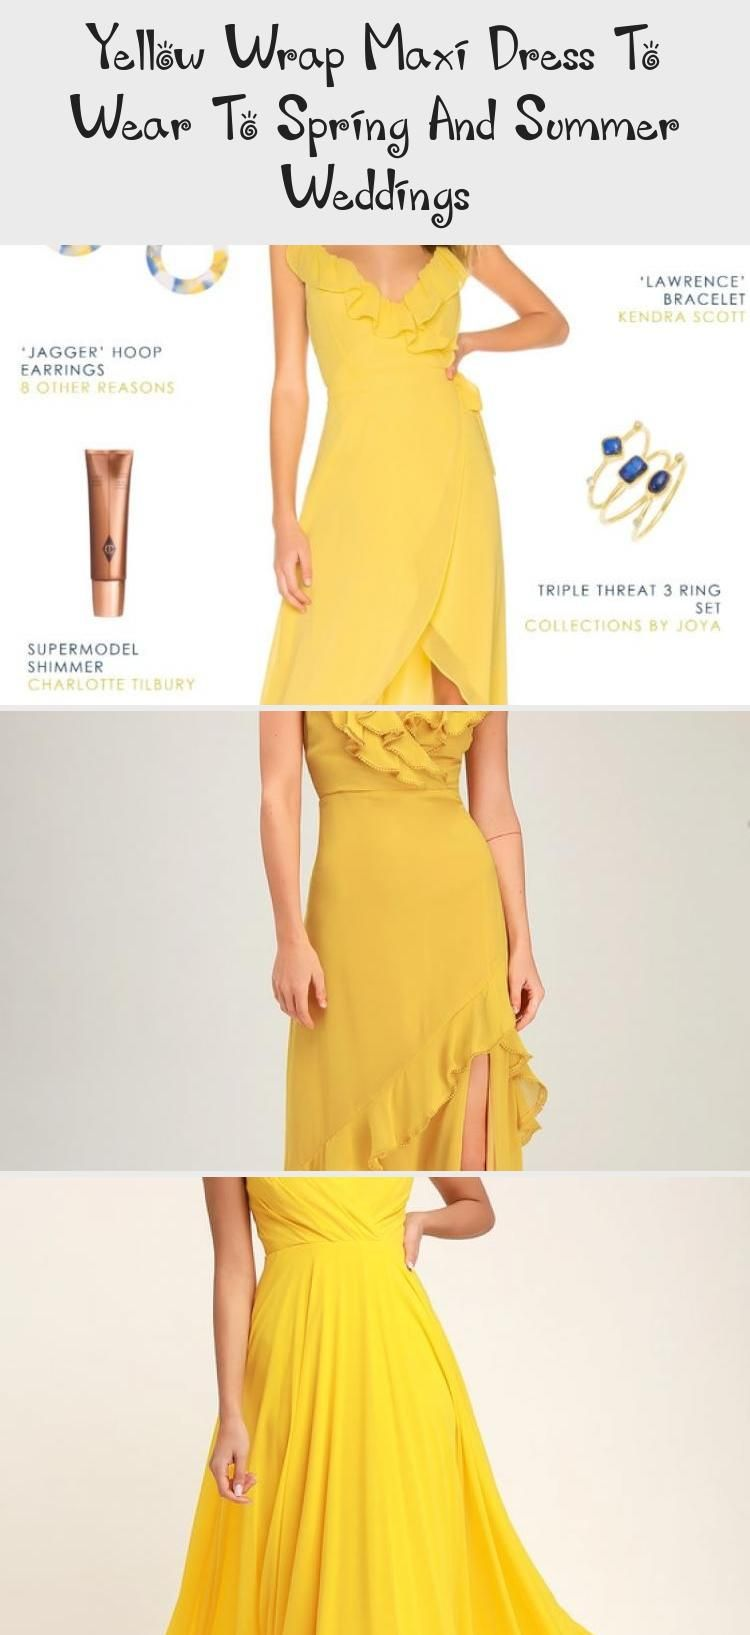 Yellow Wrap Maxi Dress To Wear To Spring And Summer Weddings